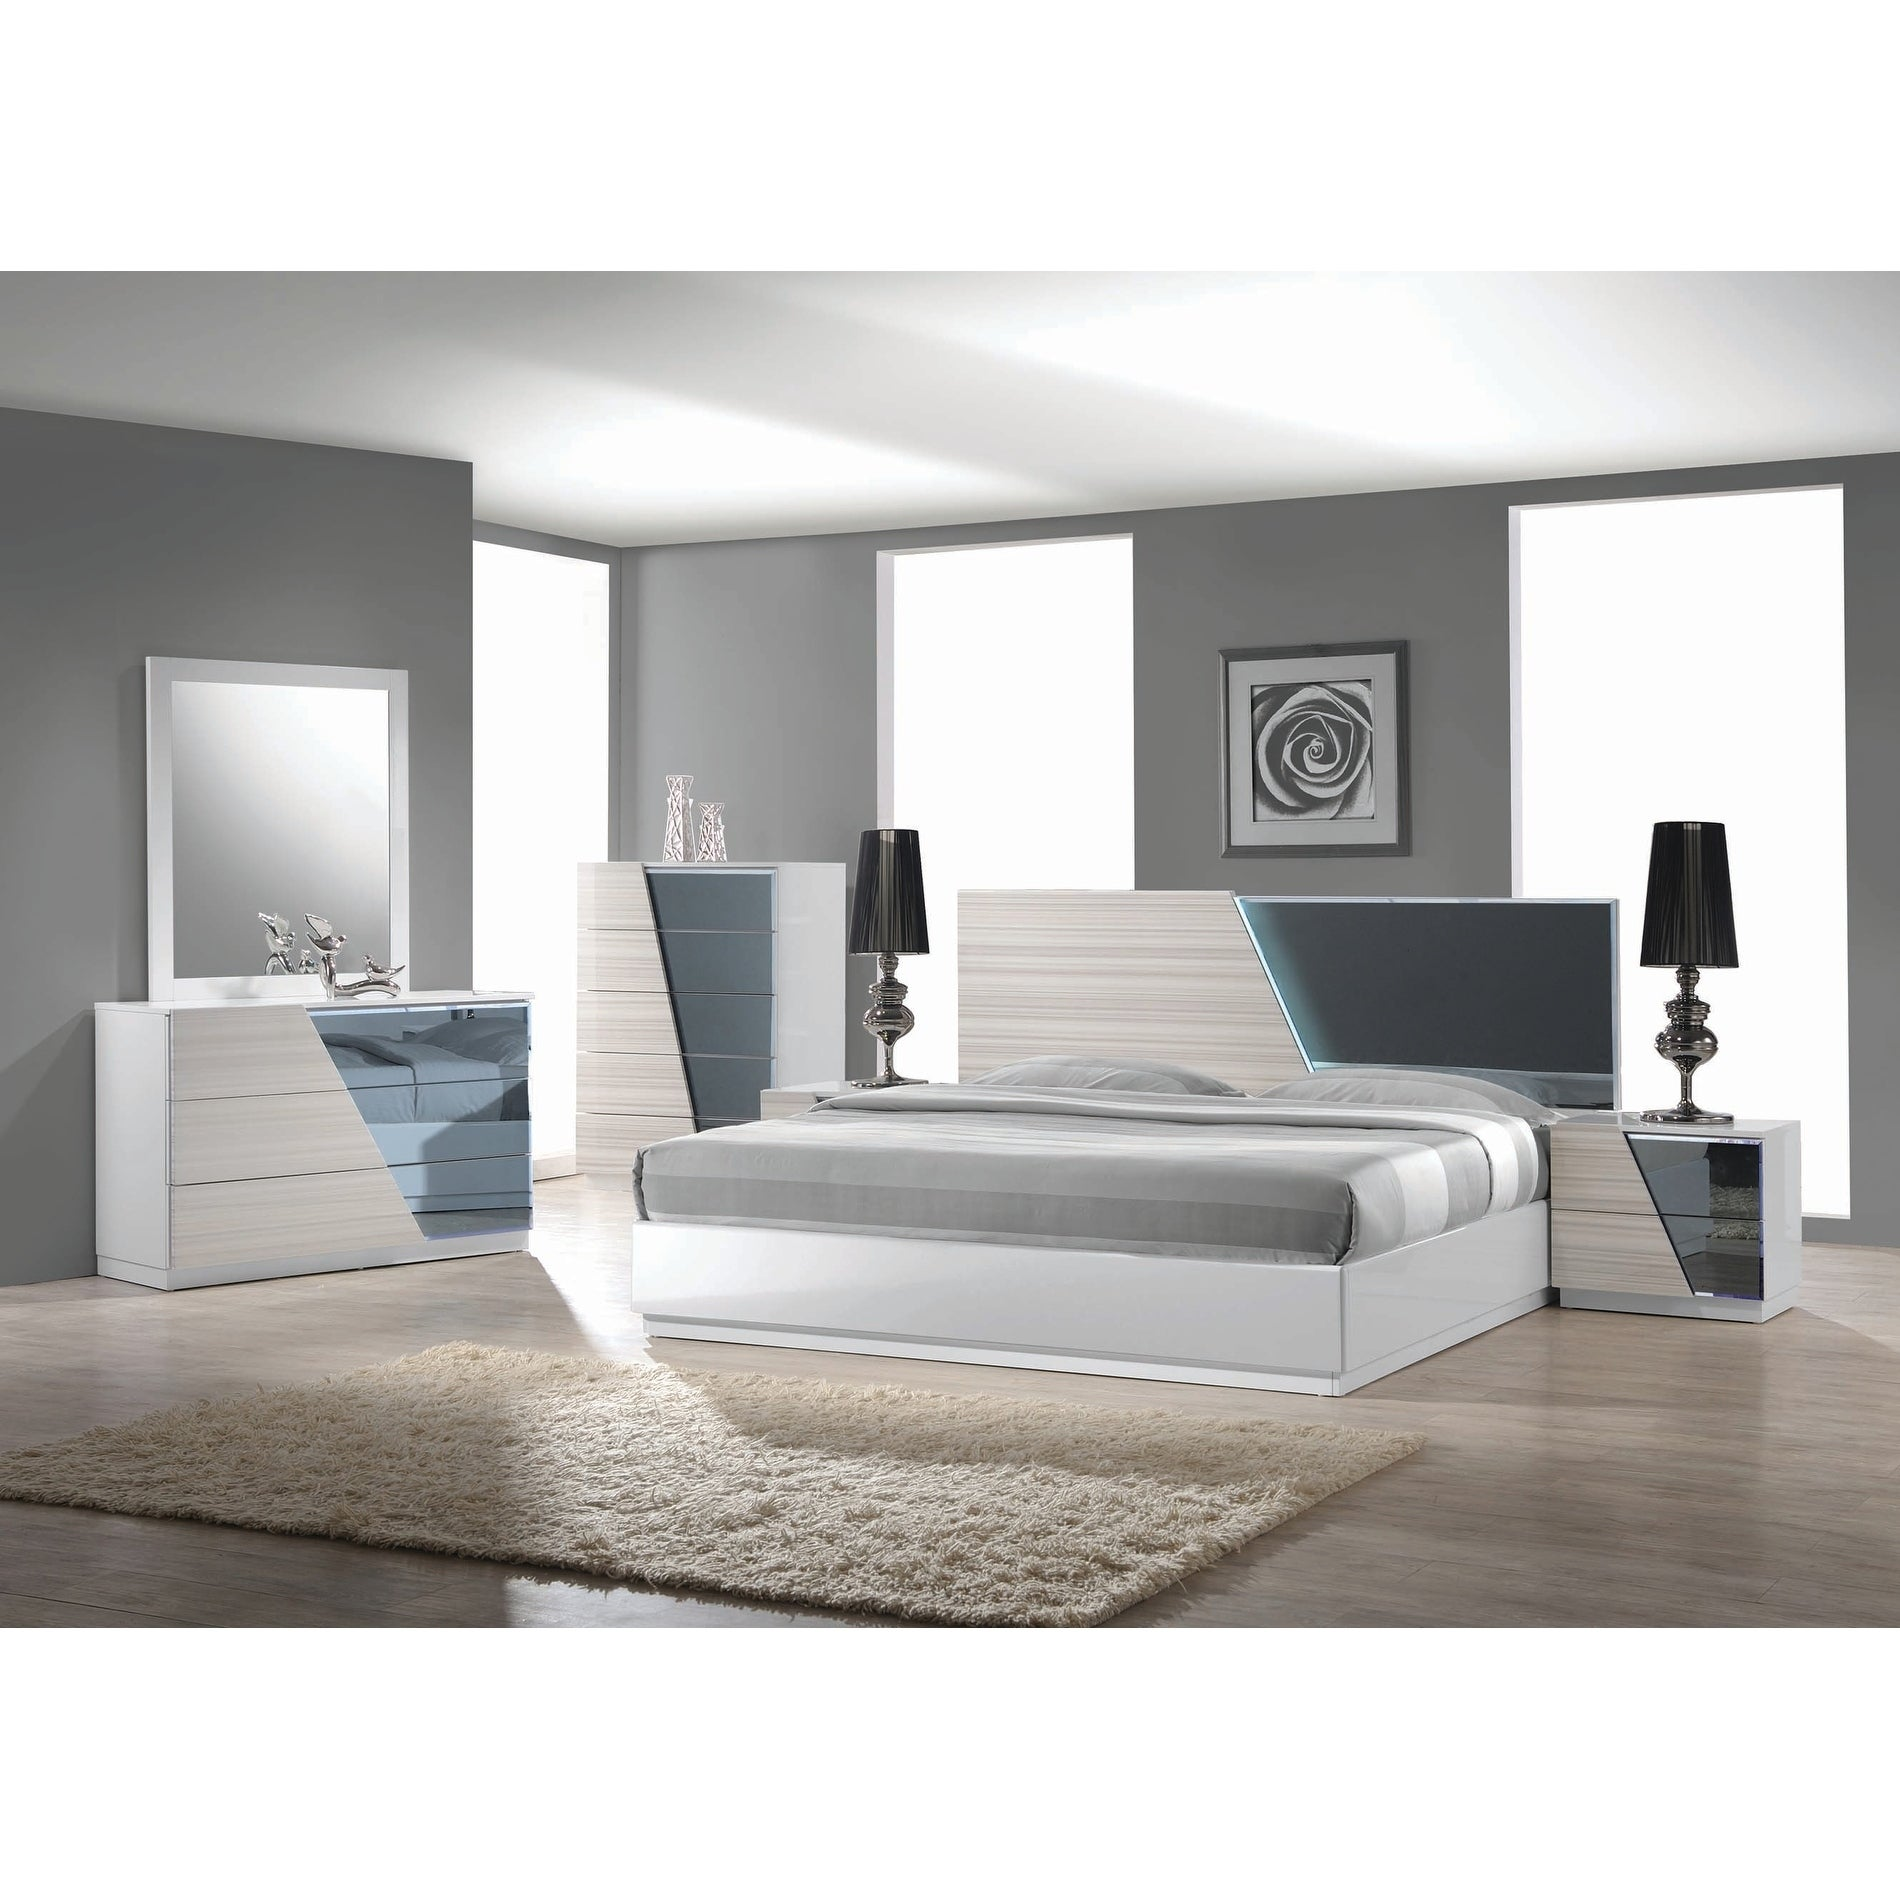 Zebra Grey 5 Piece Platform Bedroom Set